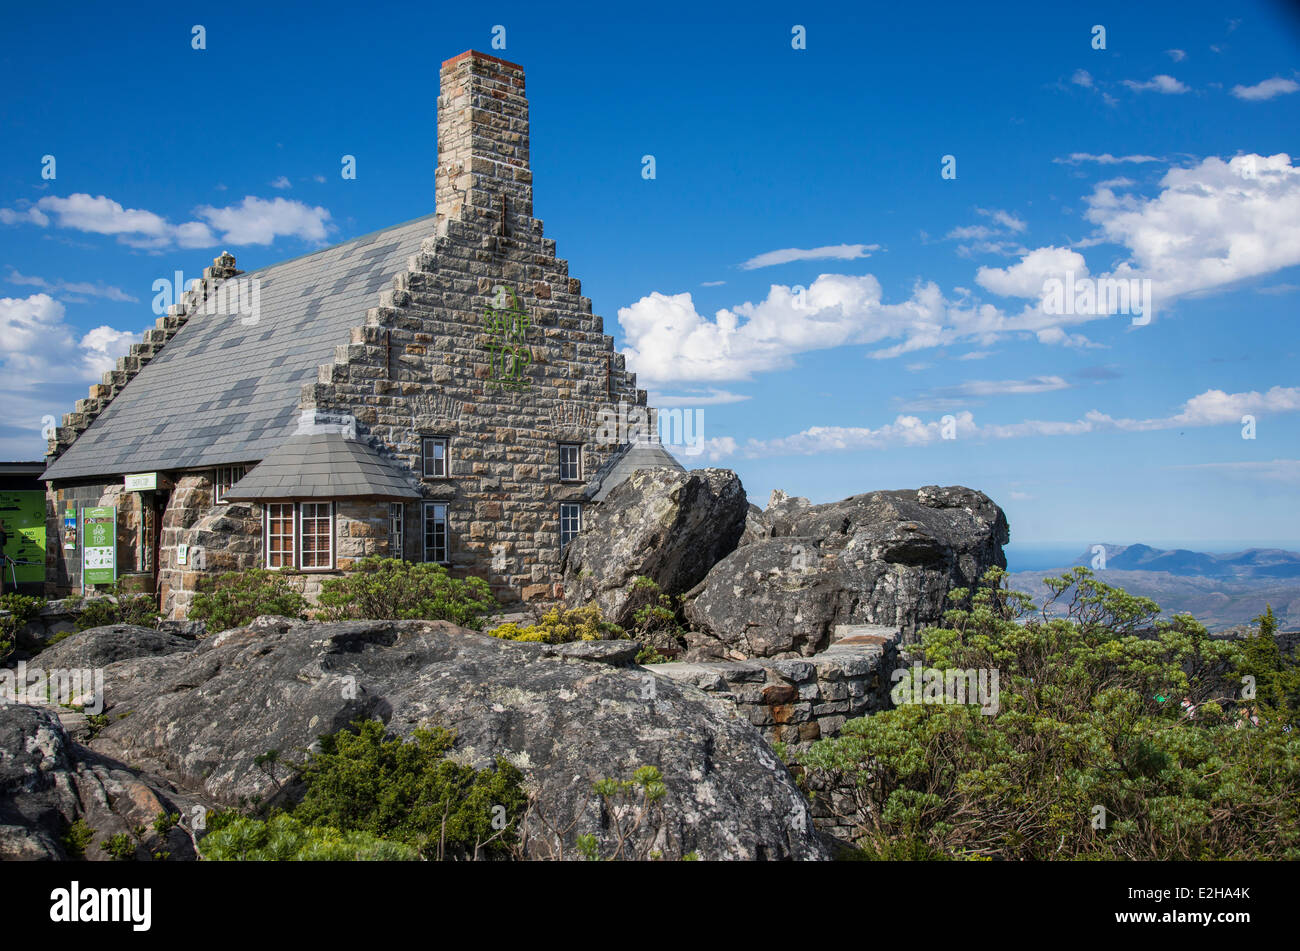 Mountain cabin on Table Mountain, Cape Town, Western Cape, South Africa - Stock Image